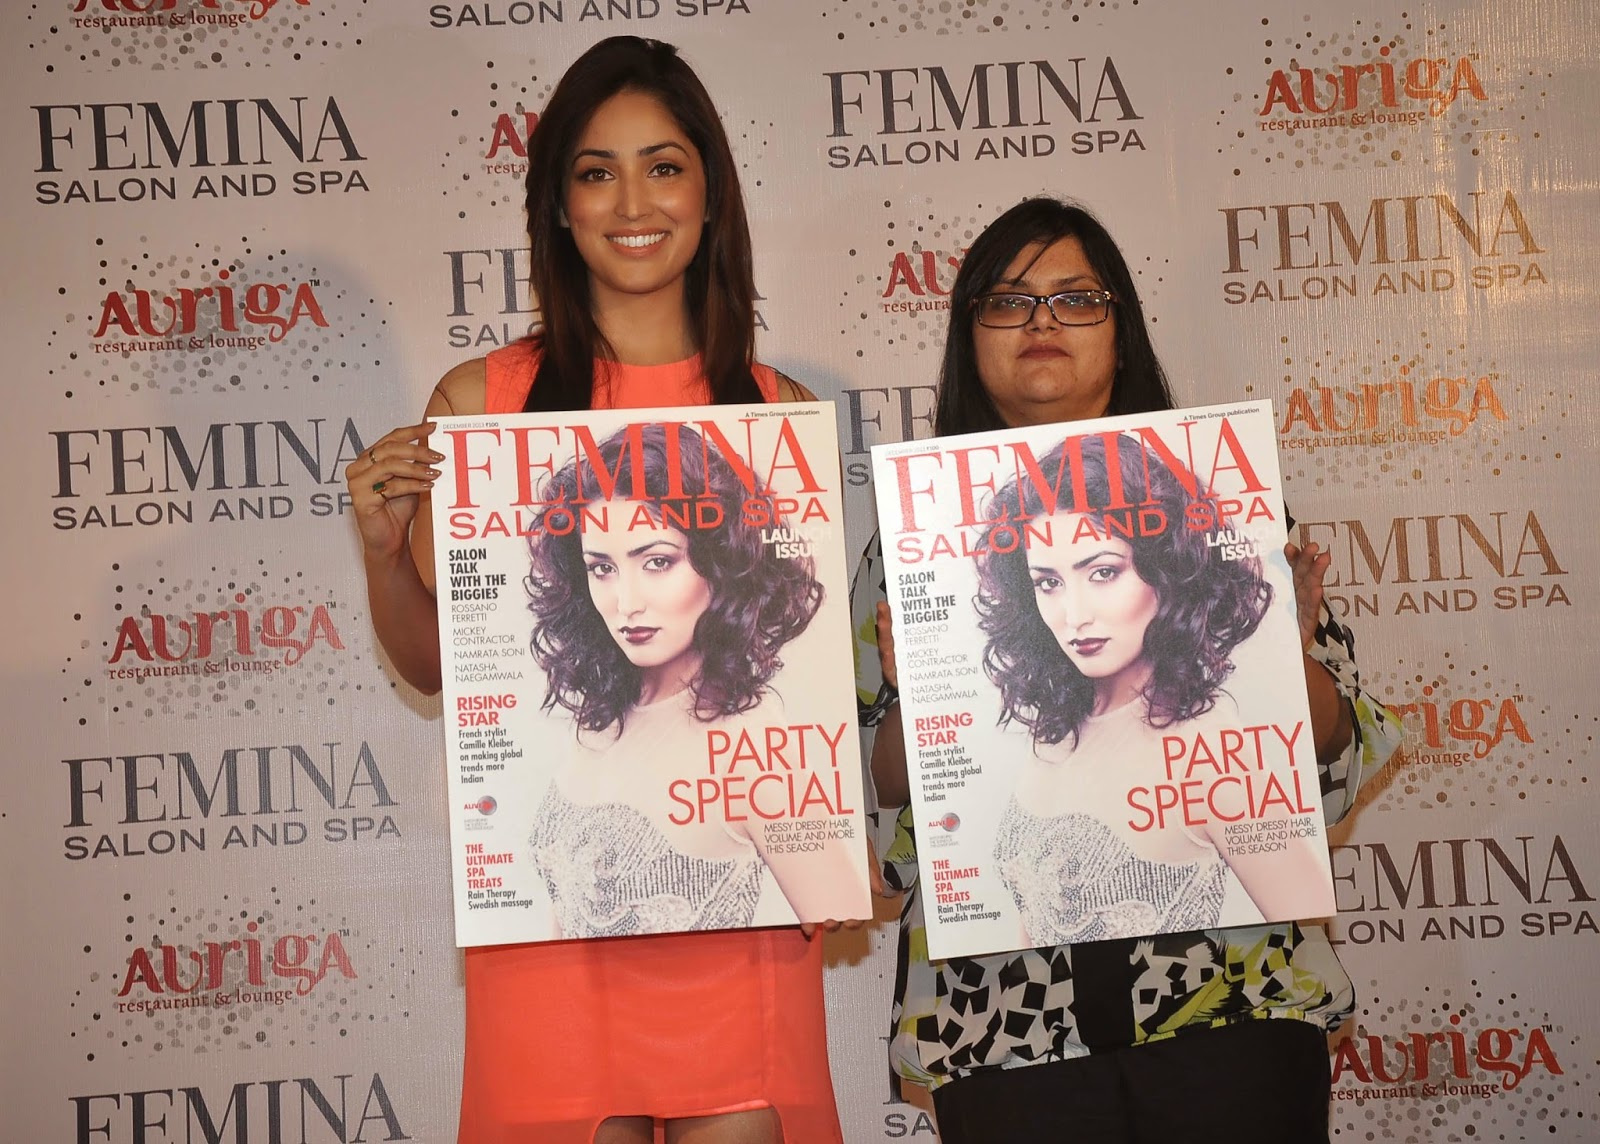 Actress, Bollywood, Bollywood actress, Entertainment, FEMINA, India, Launch, Magazine, Mumbai, Salon, Showbiz, Spa, Yami Gautam, Yami Gautam Photo,